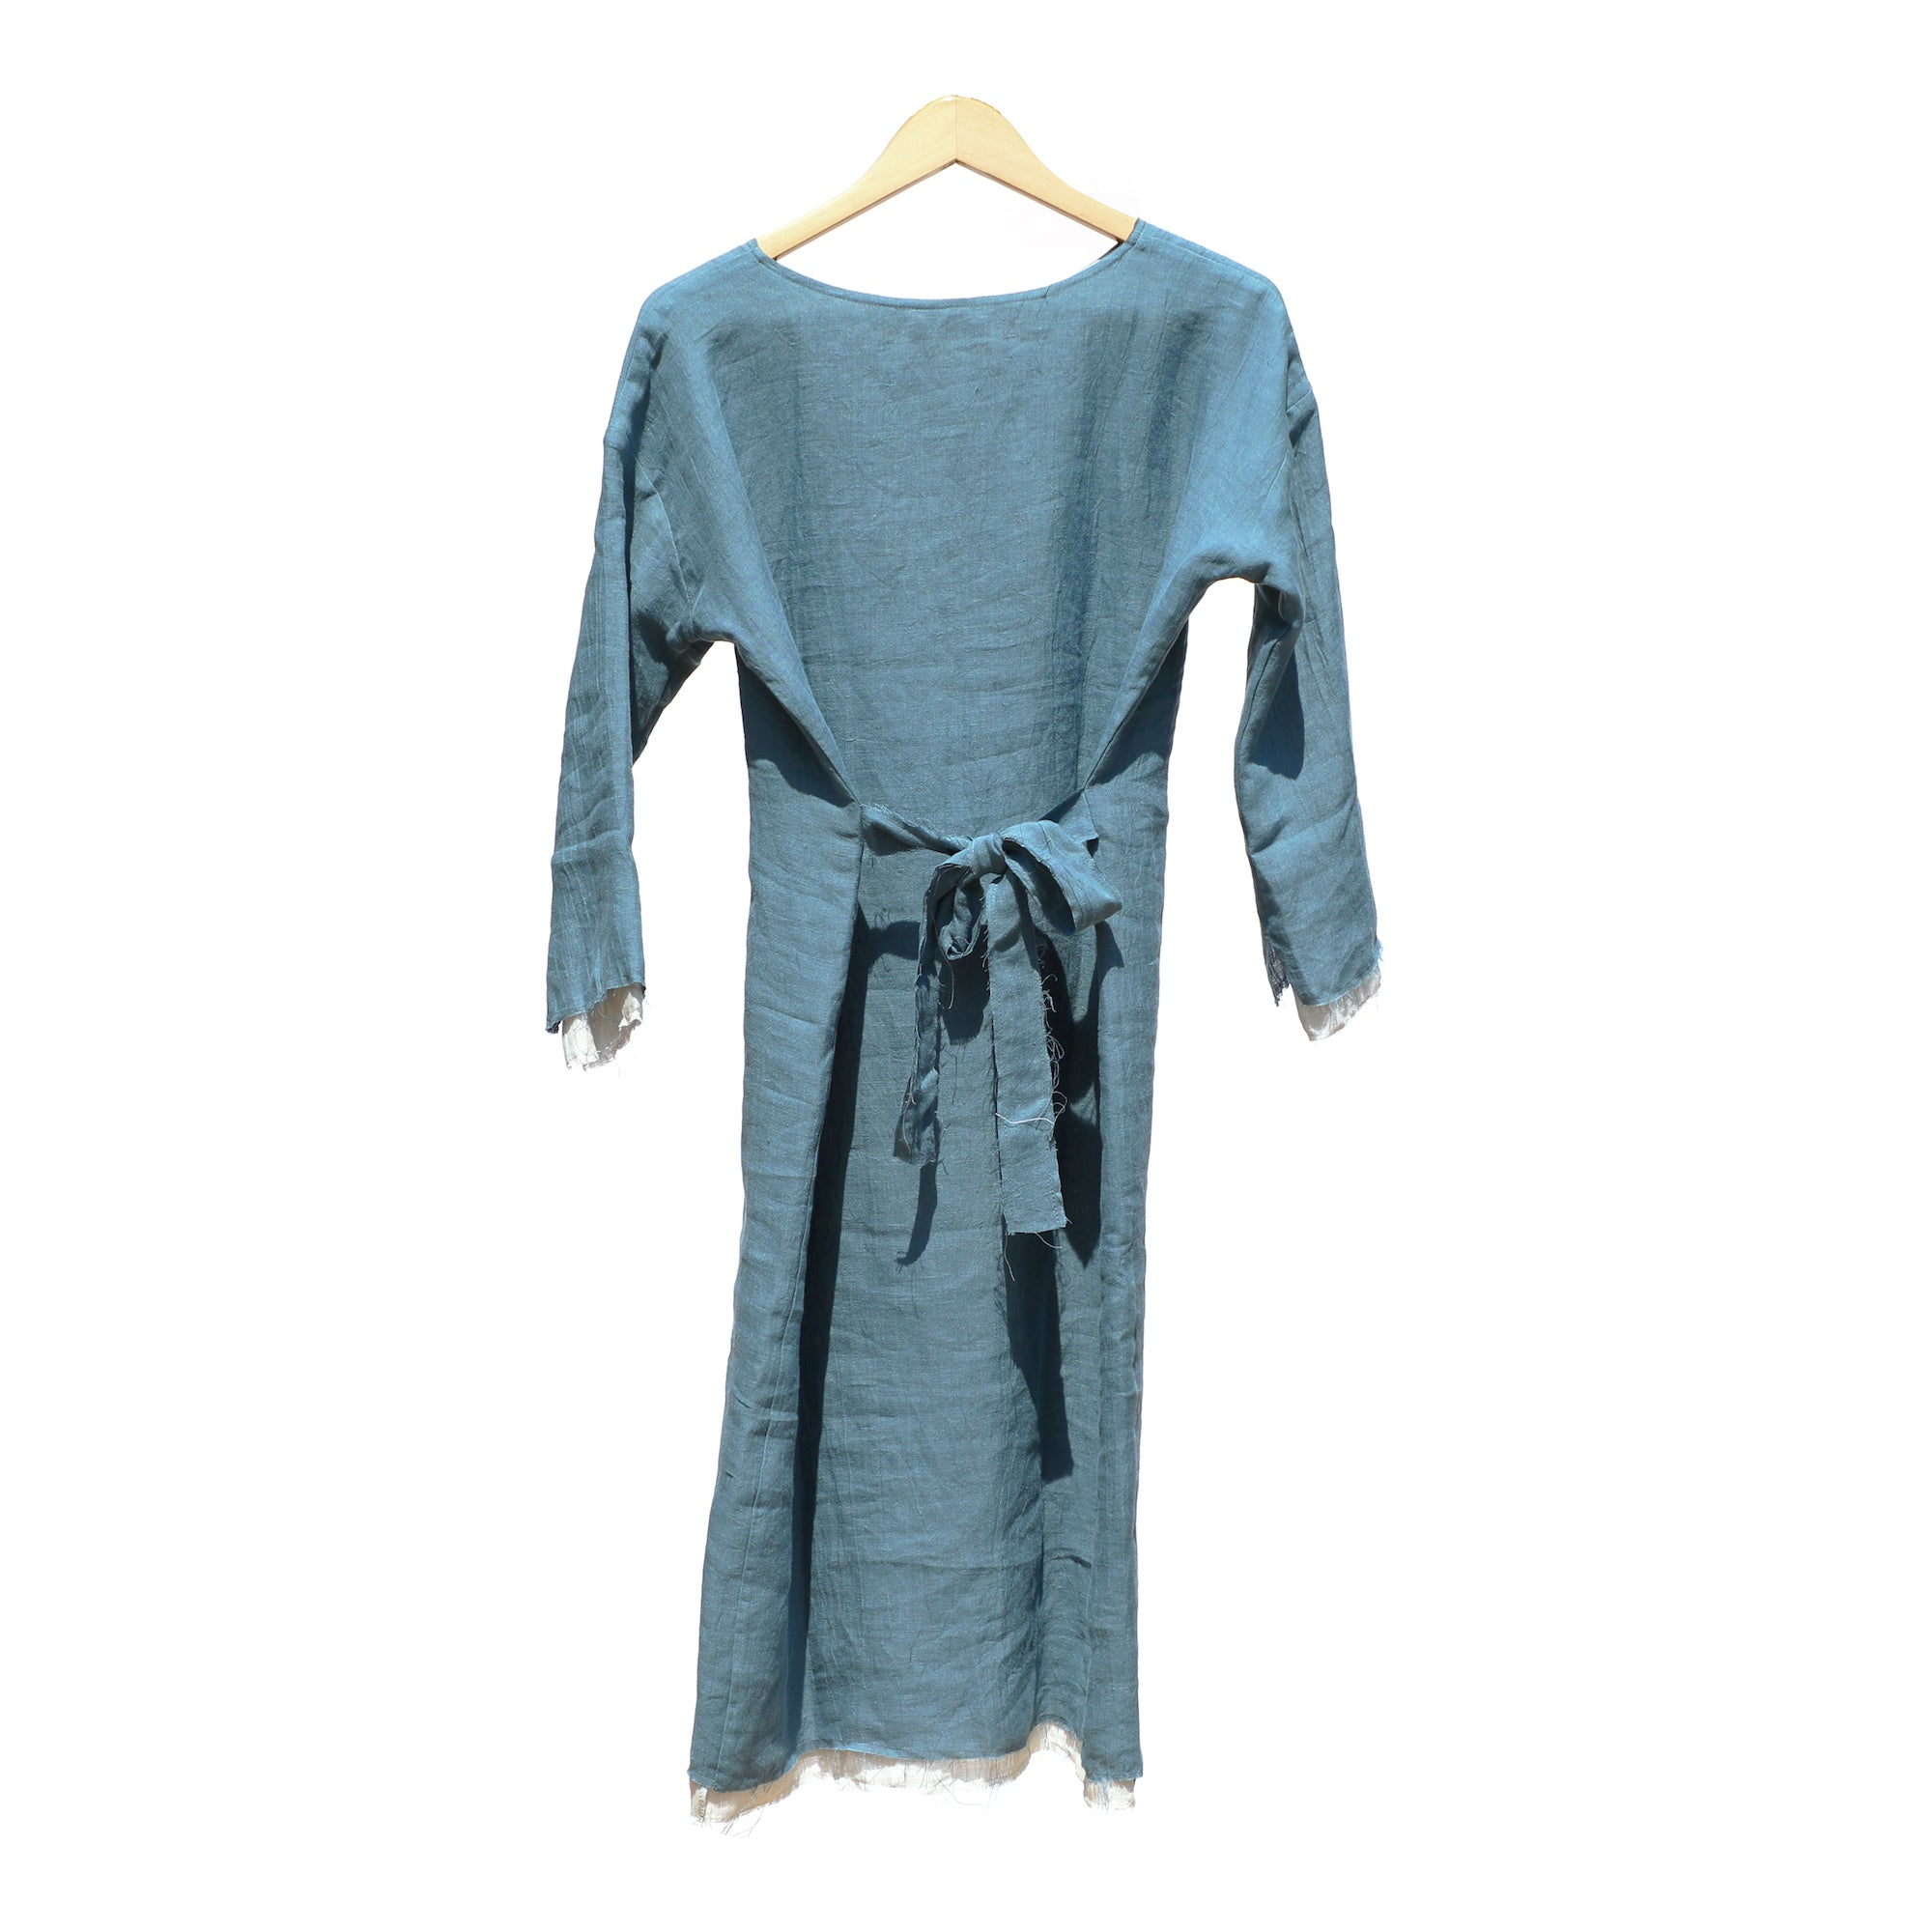 Double Layer Dress - Blue / Grey